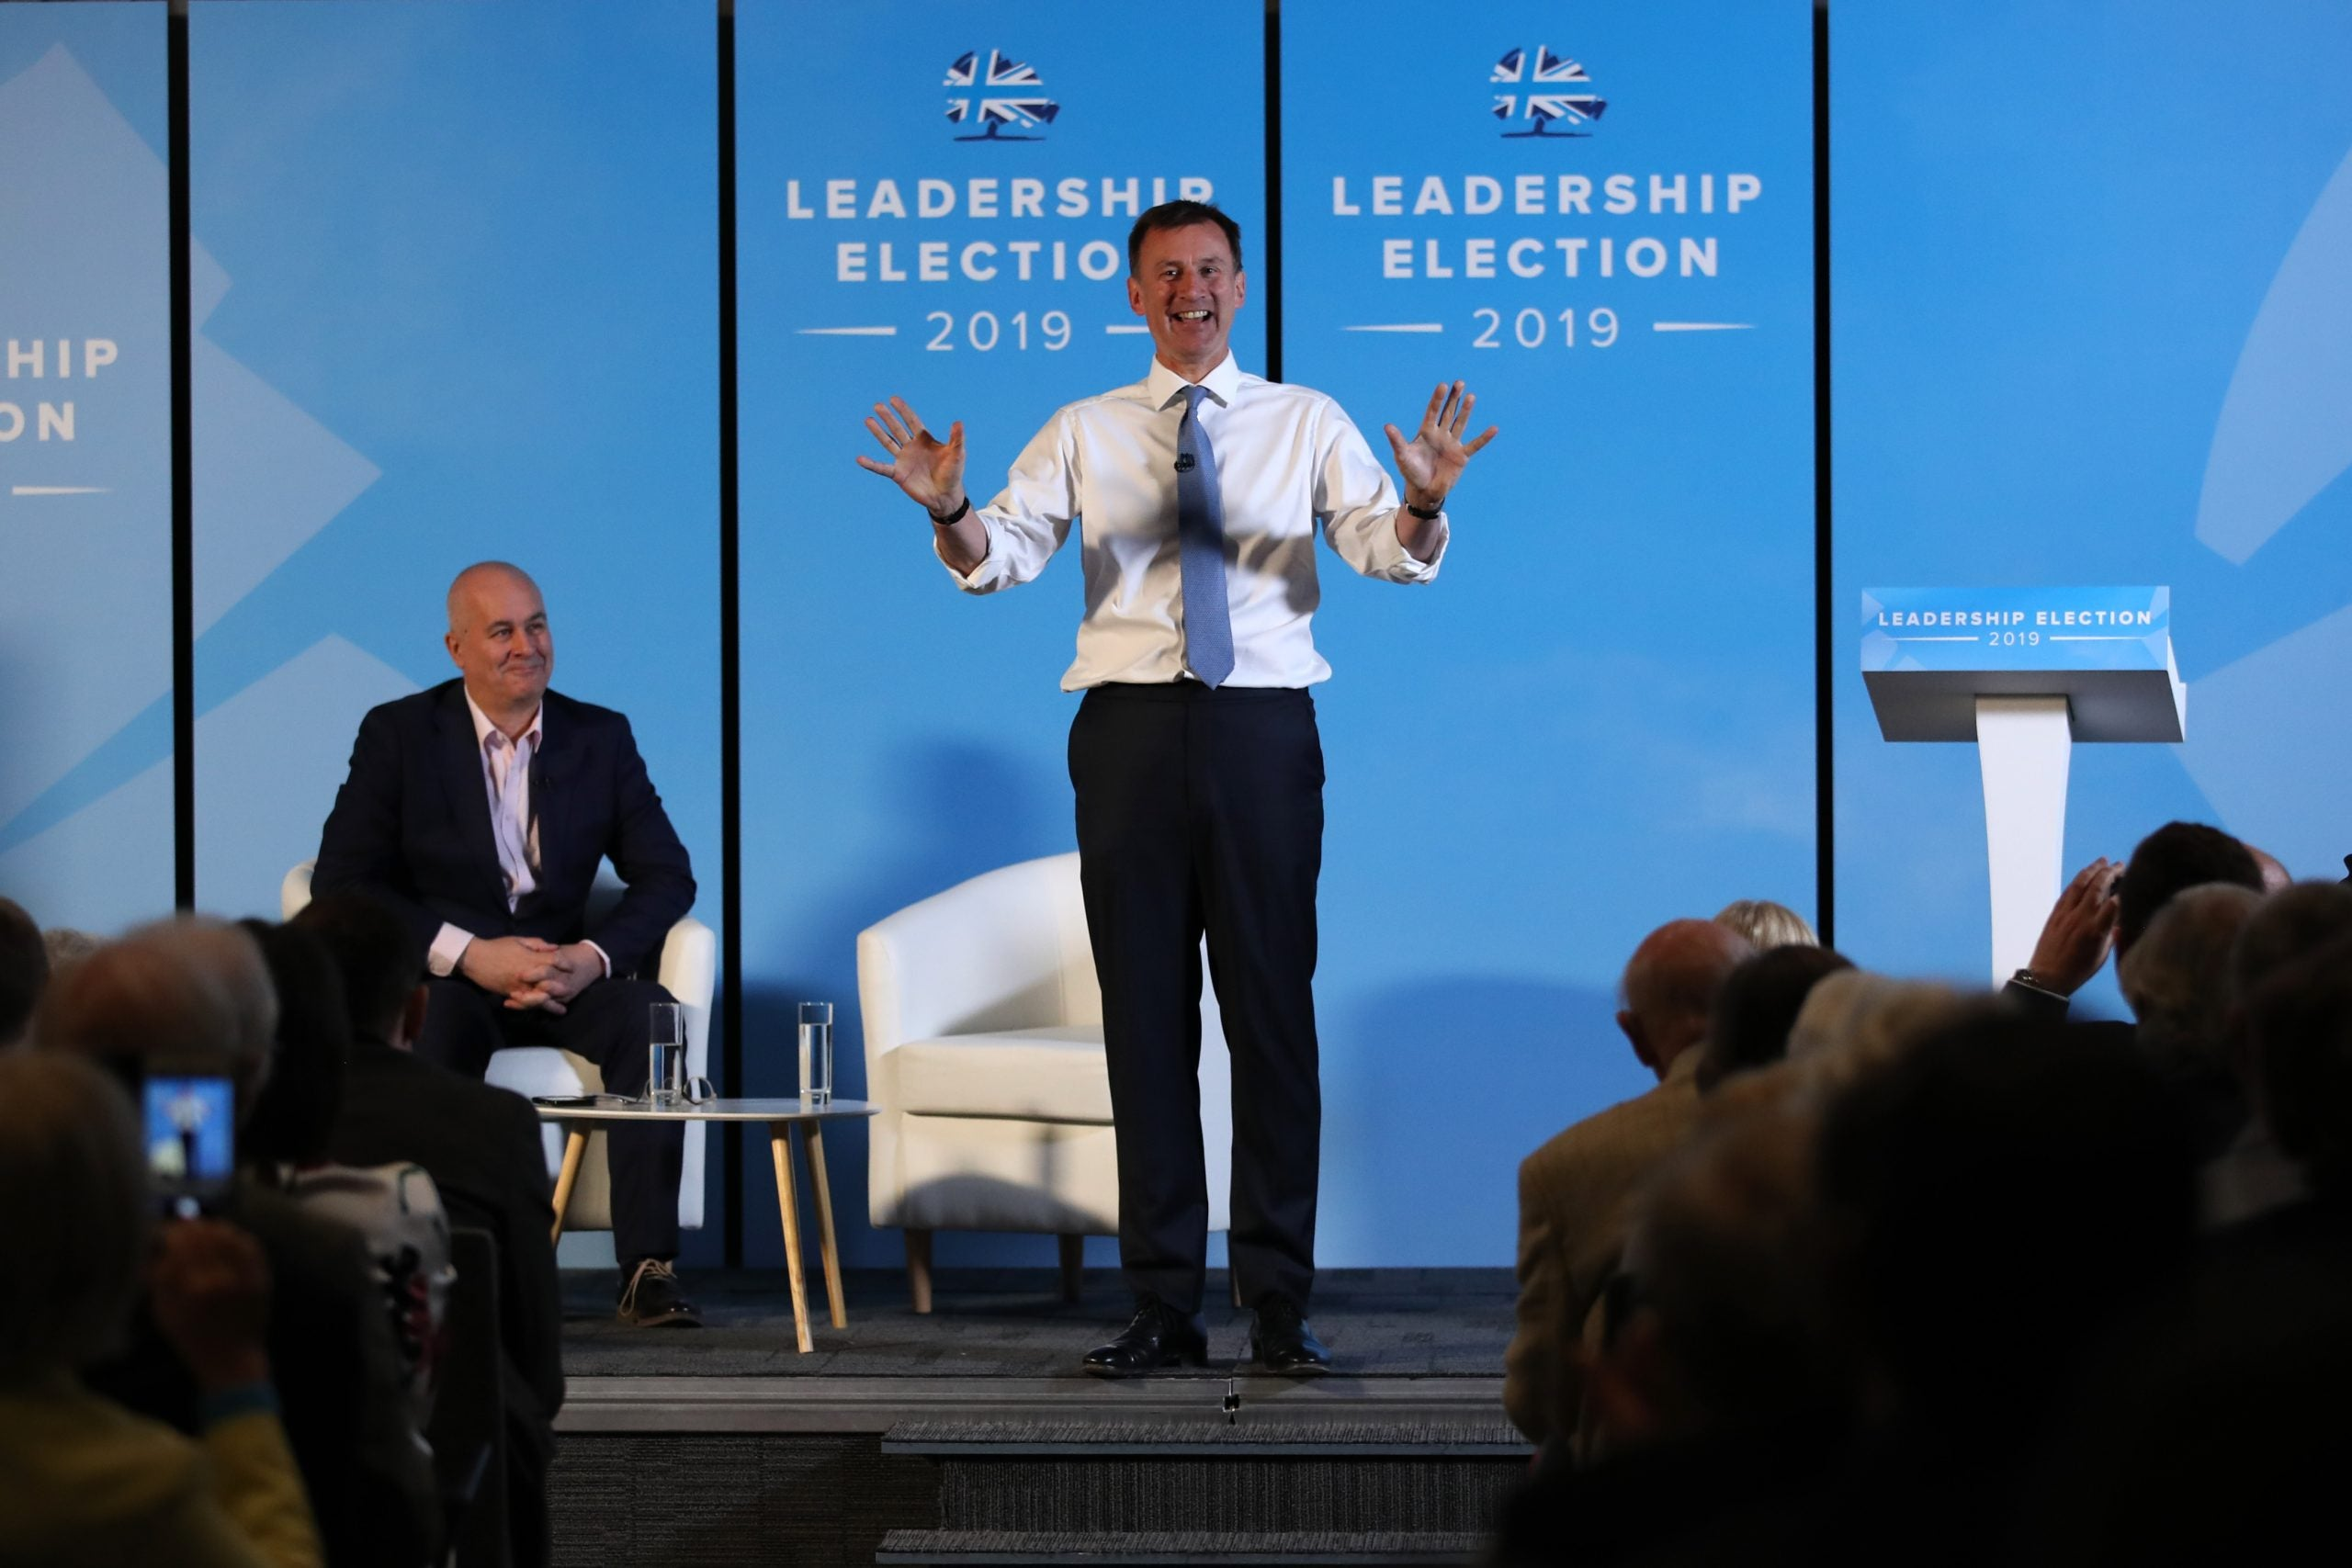 Iain Dale's Diary: Comic timing, cricketing glory, and what I learnt from chairing the Tory hustings